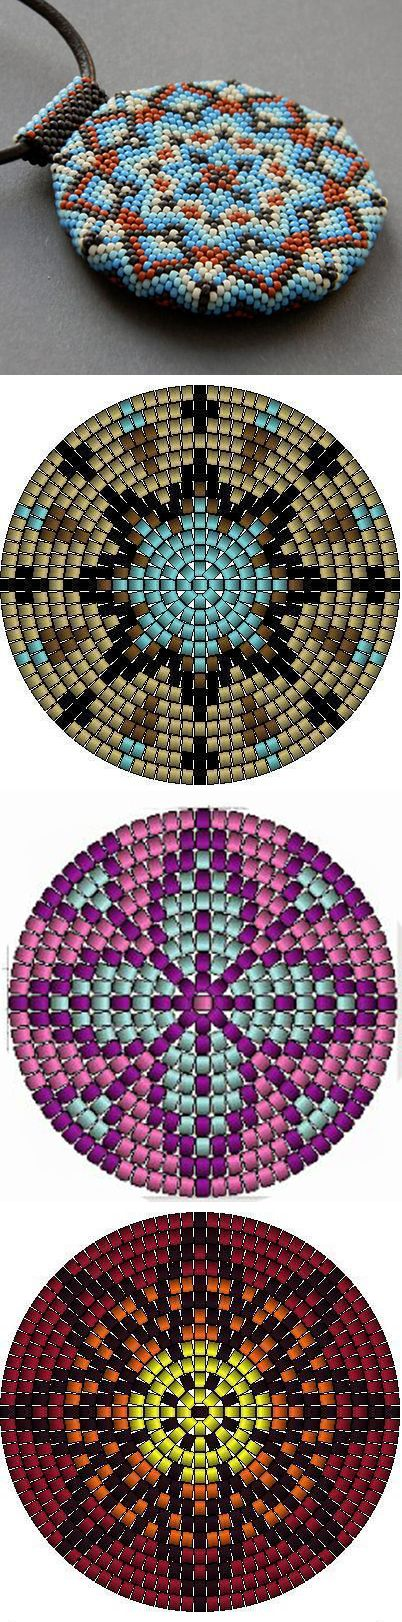 Beaded mandala patterns. These are so beautiful. I'm unsure if you use netting technique or peyote technique. I'm curious to find out.